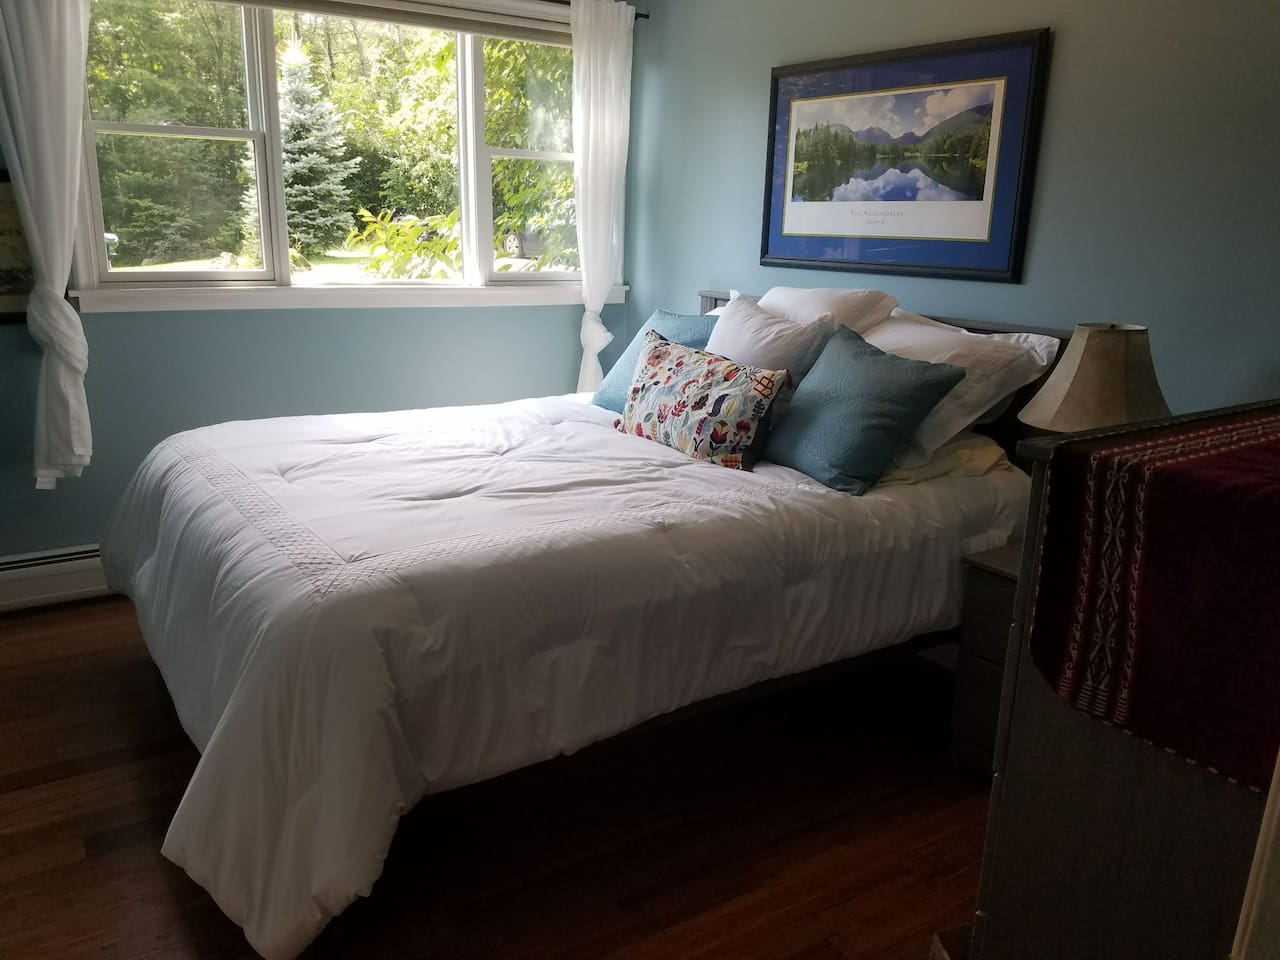 Queen size bed, lots of pillows, picture window with a view of the front yard.